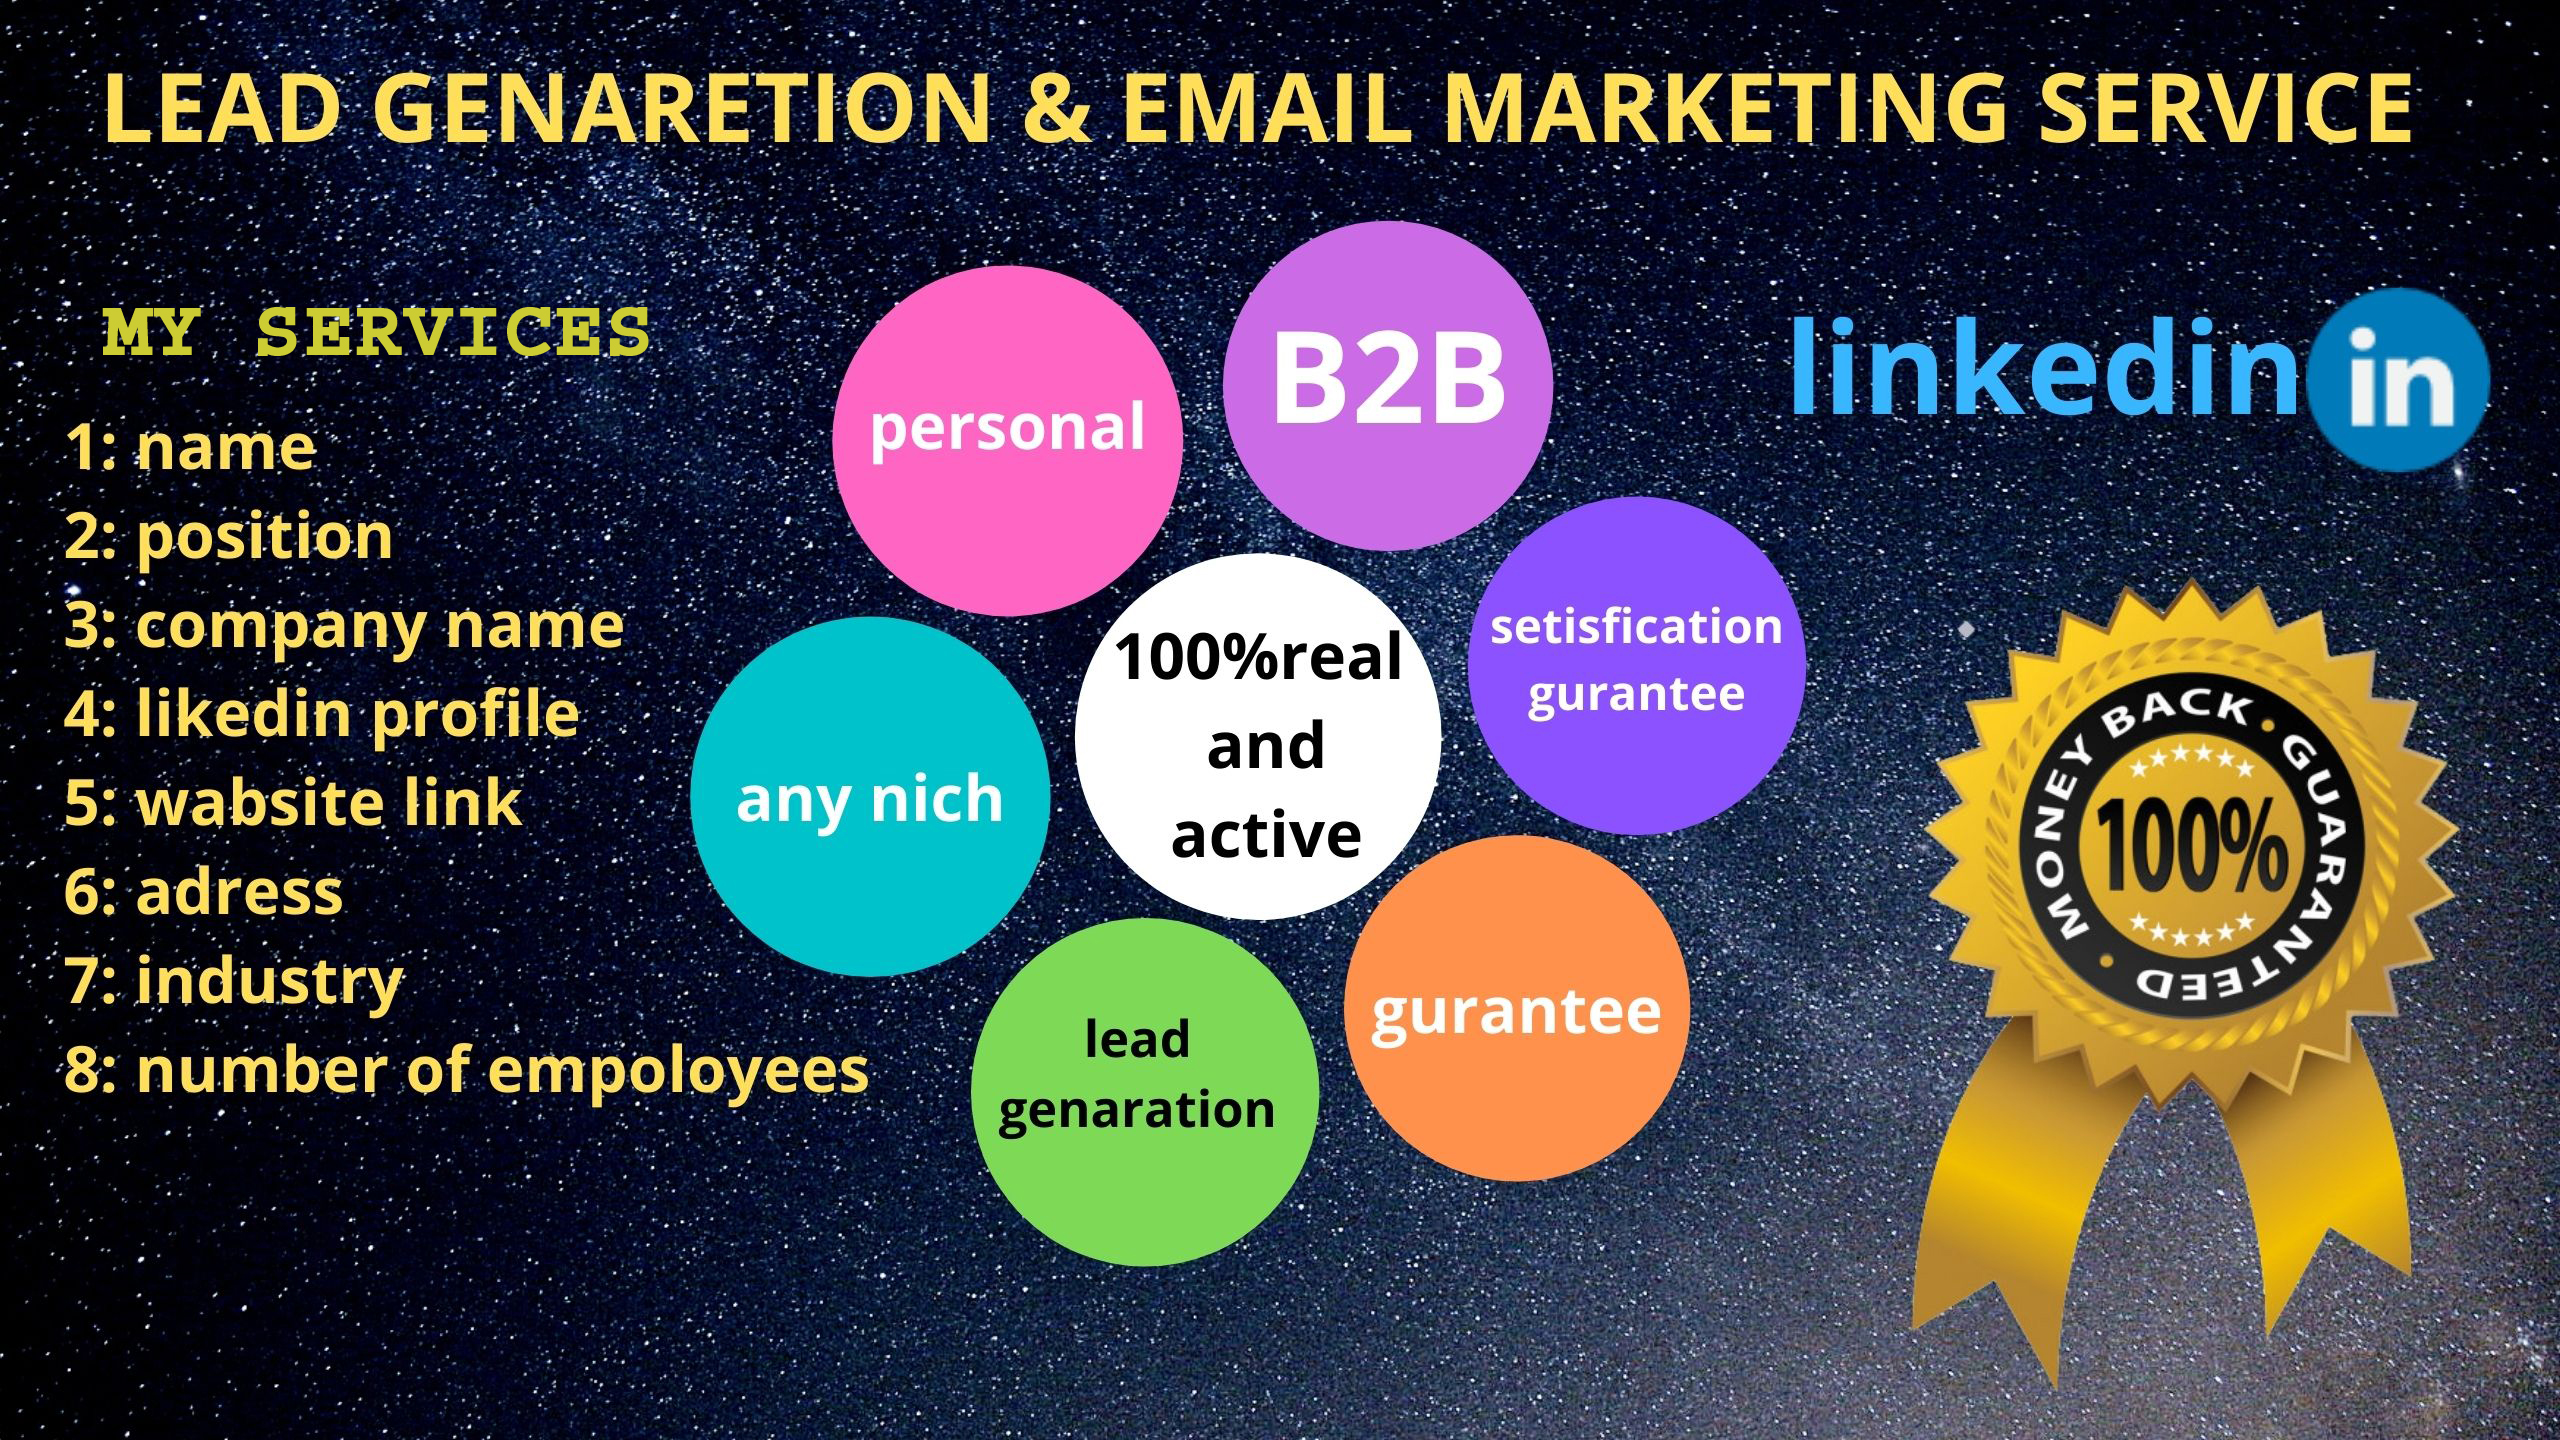 I will do for you b2b 100 lead generation and 3k email marketing campaign